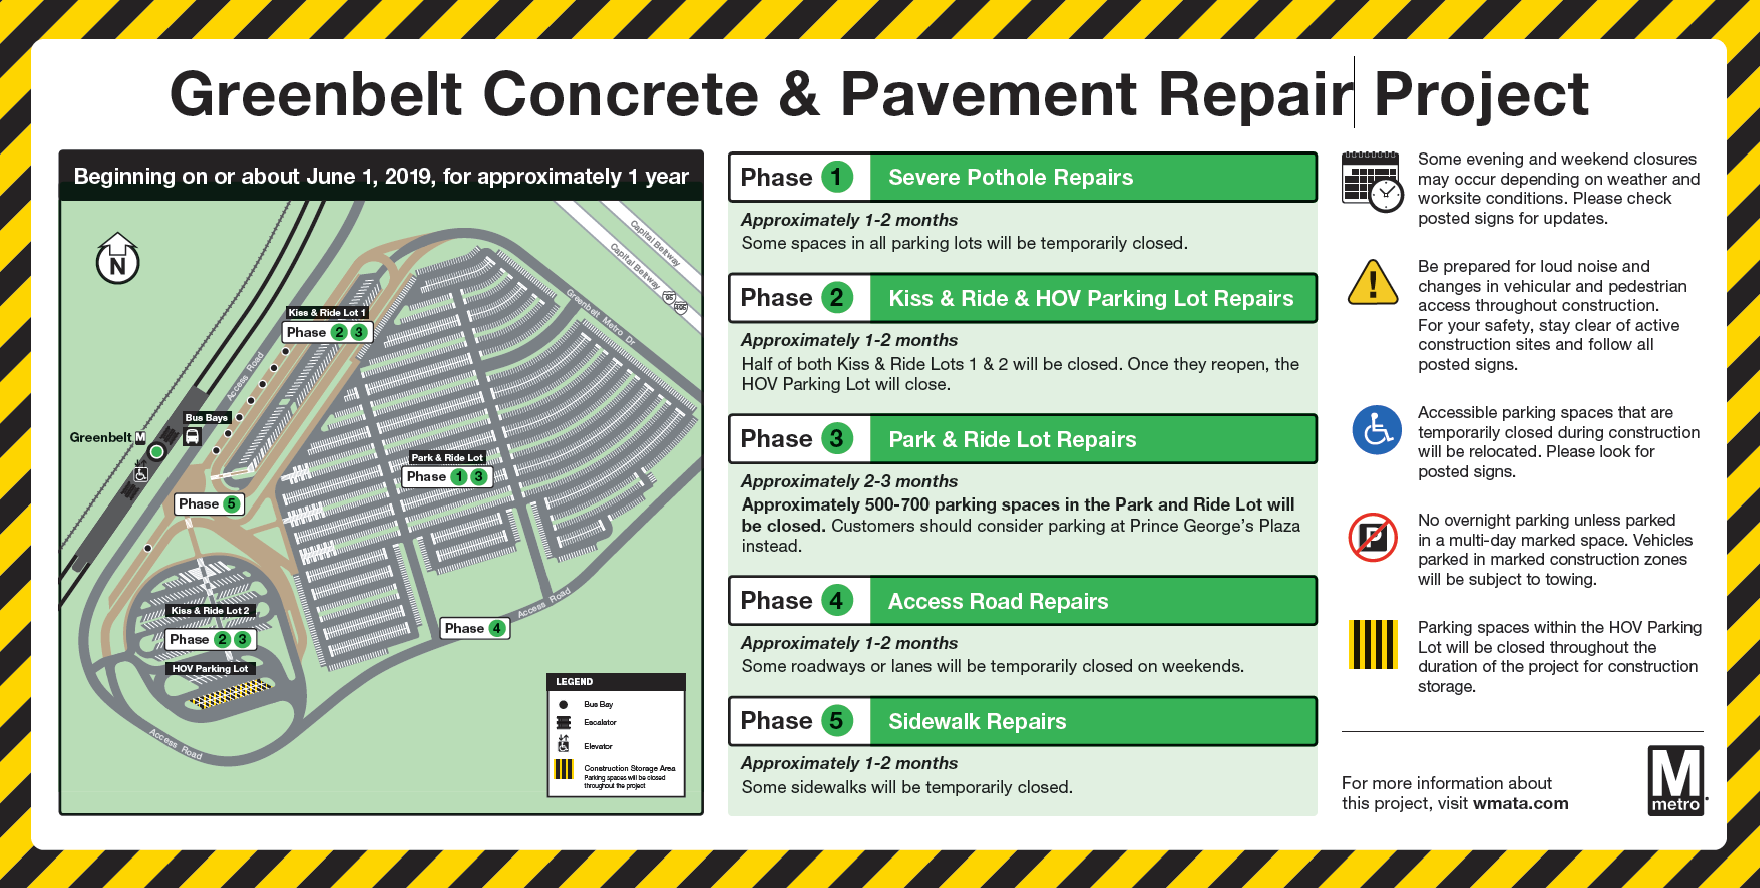 Greenbelt pavement repair overview